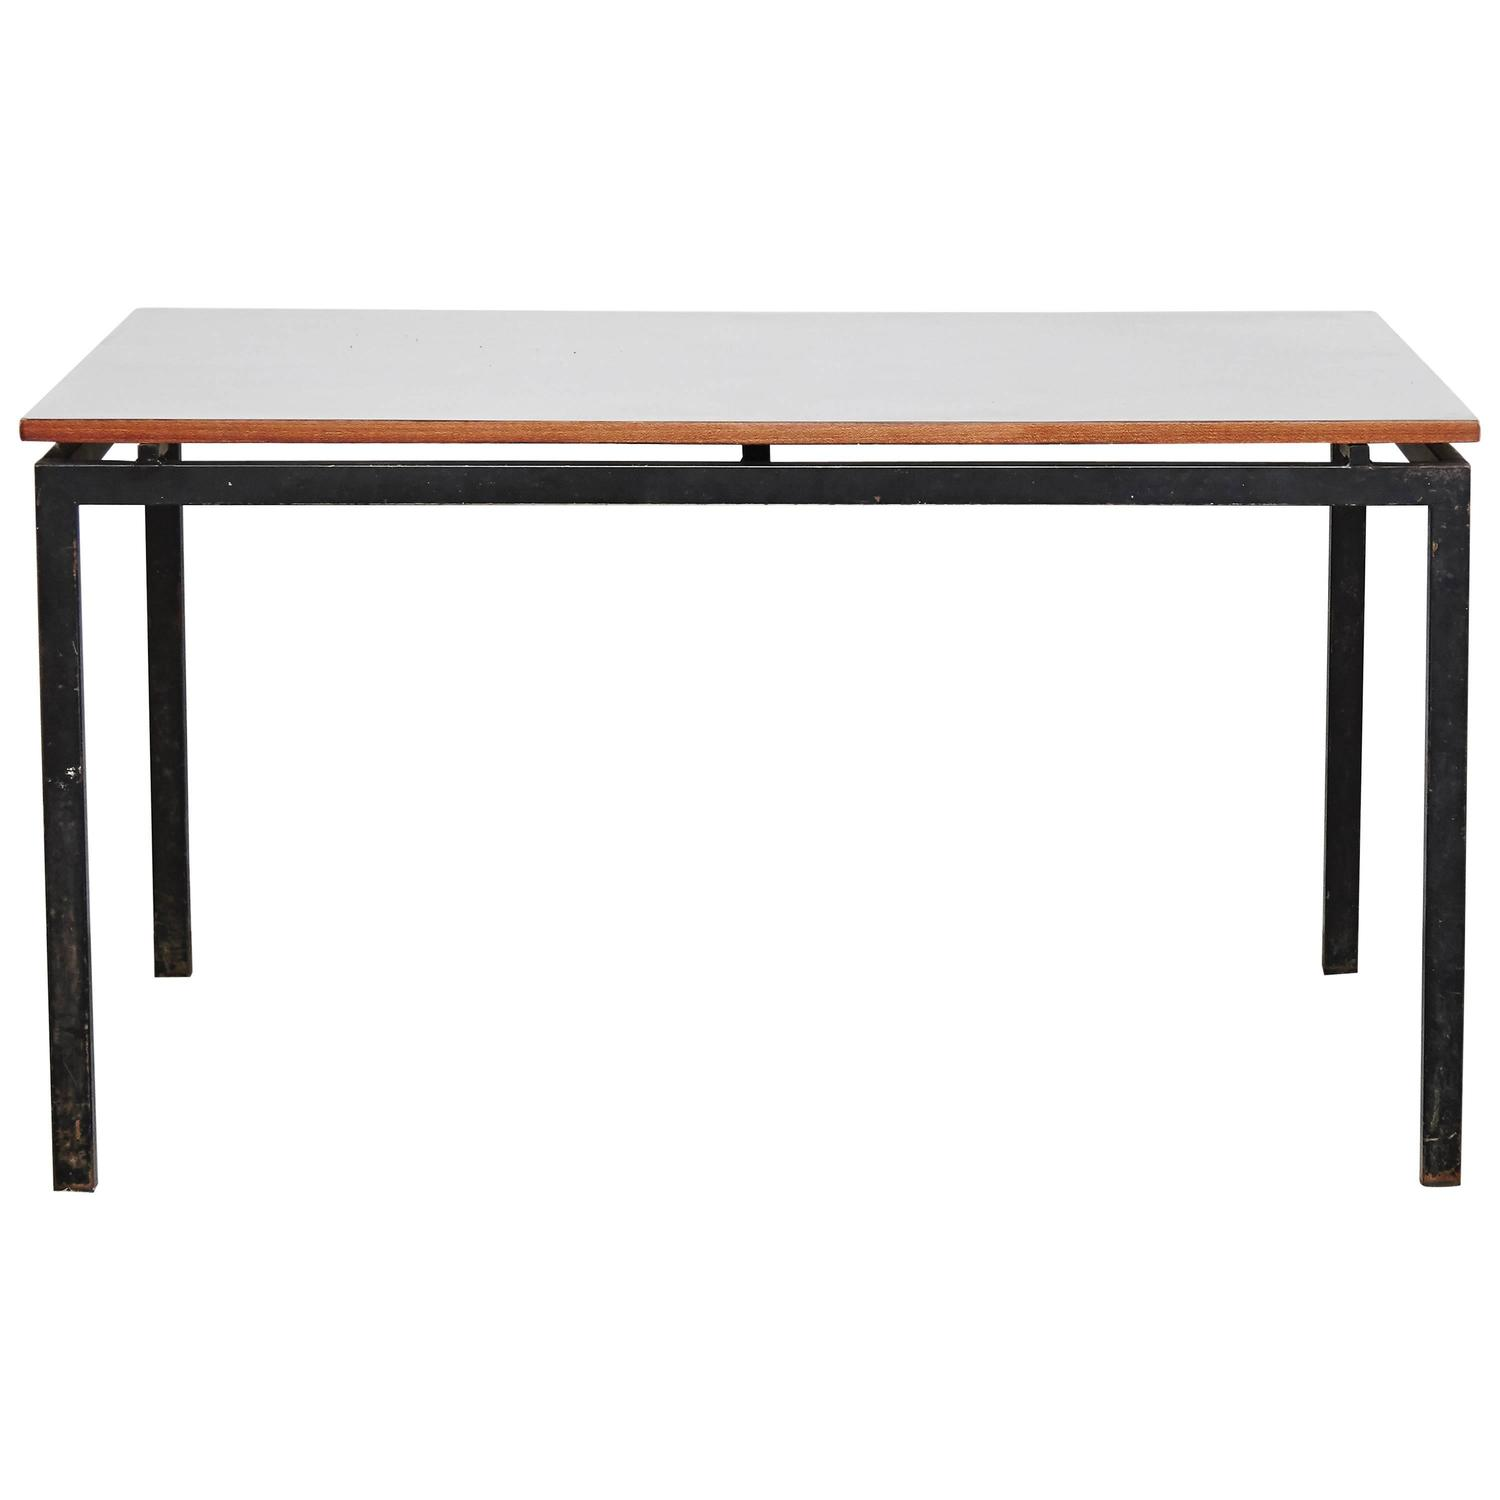 charlotte perriand cansado table circa 1950 for sale at 1stdibs. Black Bedroom Furniture Sets. Home Design Ideas